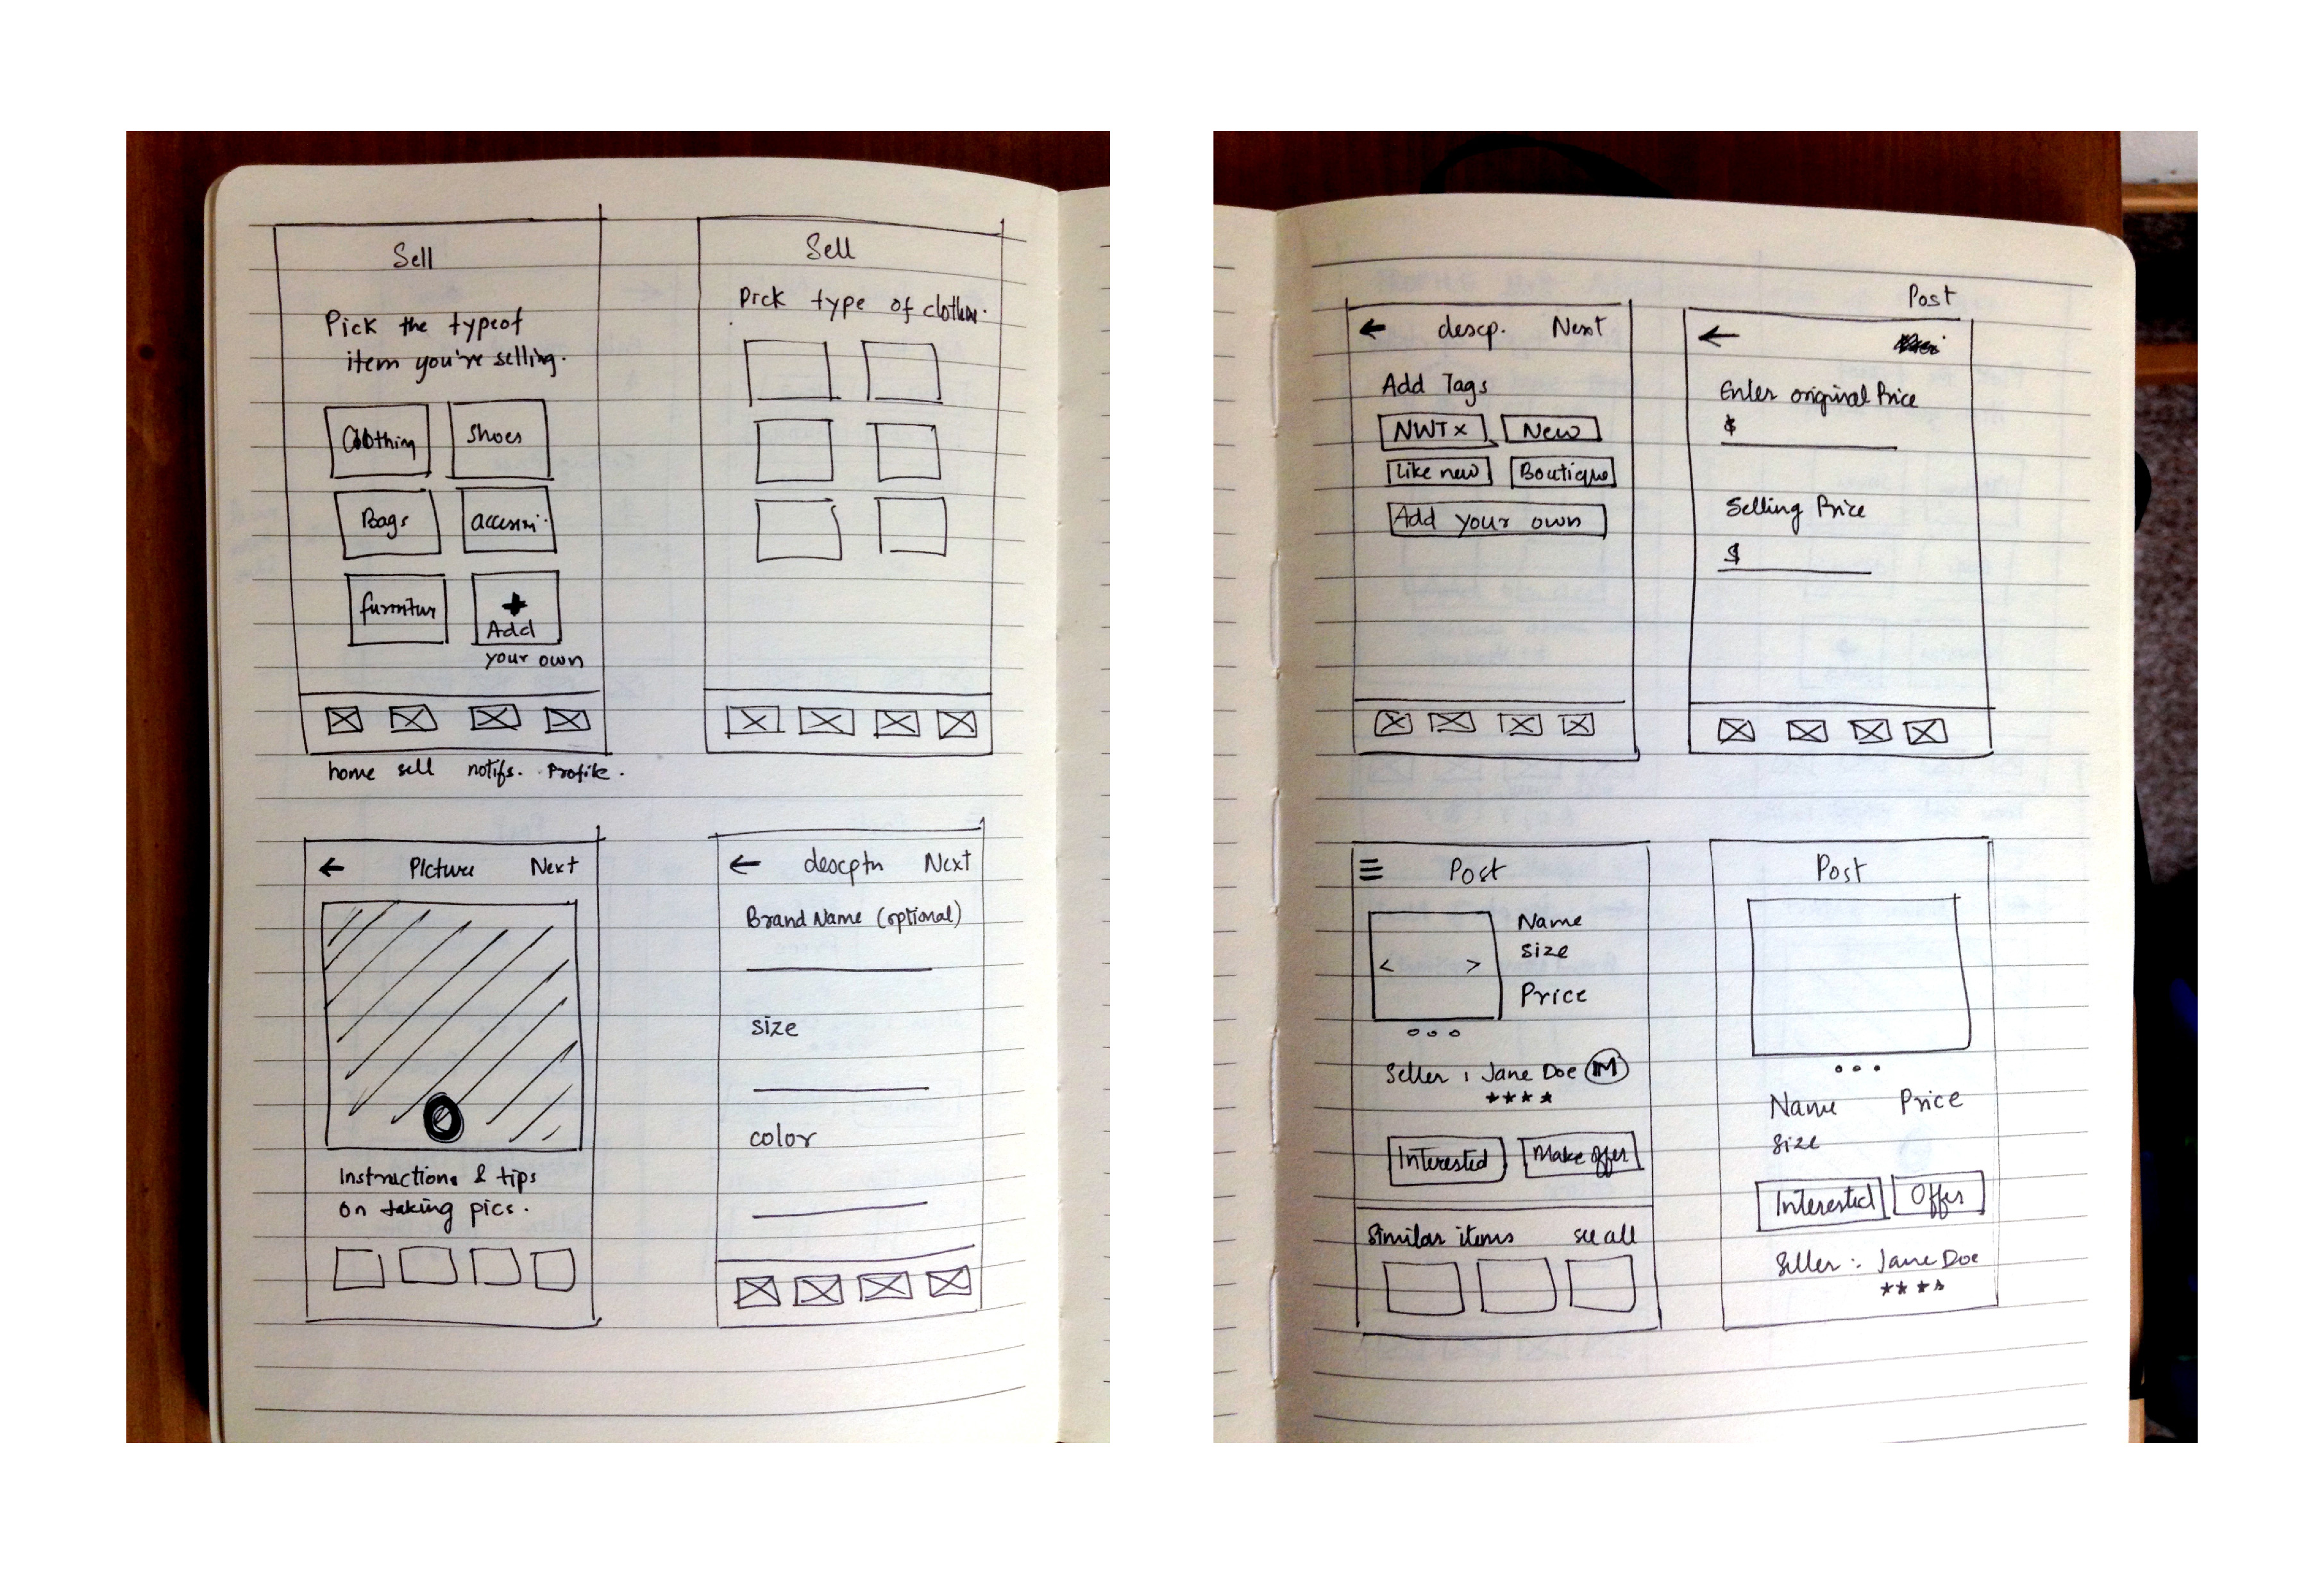 Sketching an interaction flow for seller's experience.